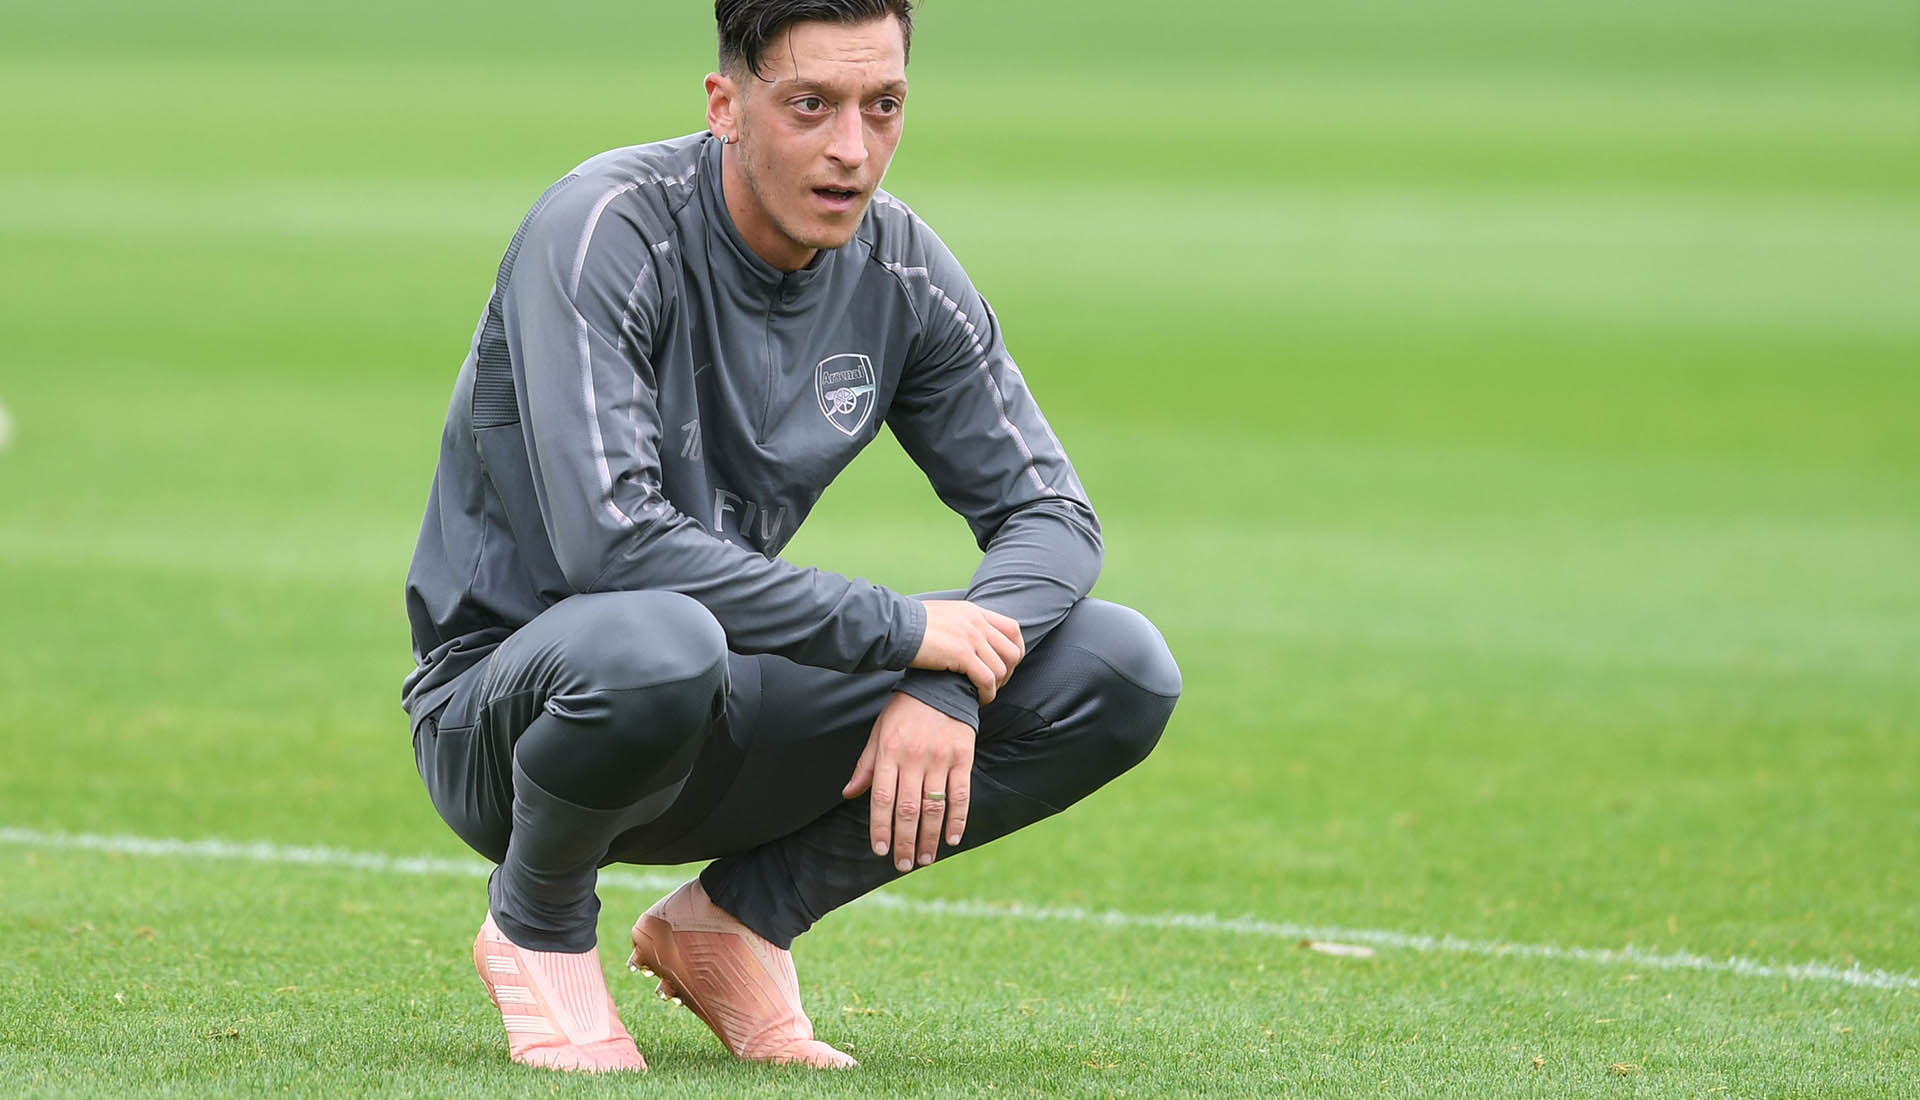 601ee405f1c3 Mesut Ozil Trains in Upcoming Pink adidas Predator Boots - SoccerBible